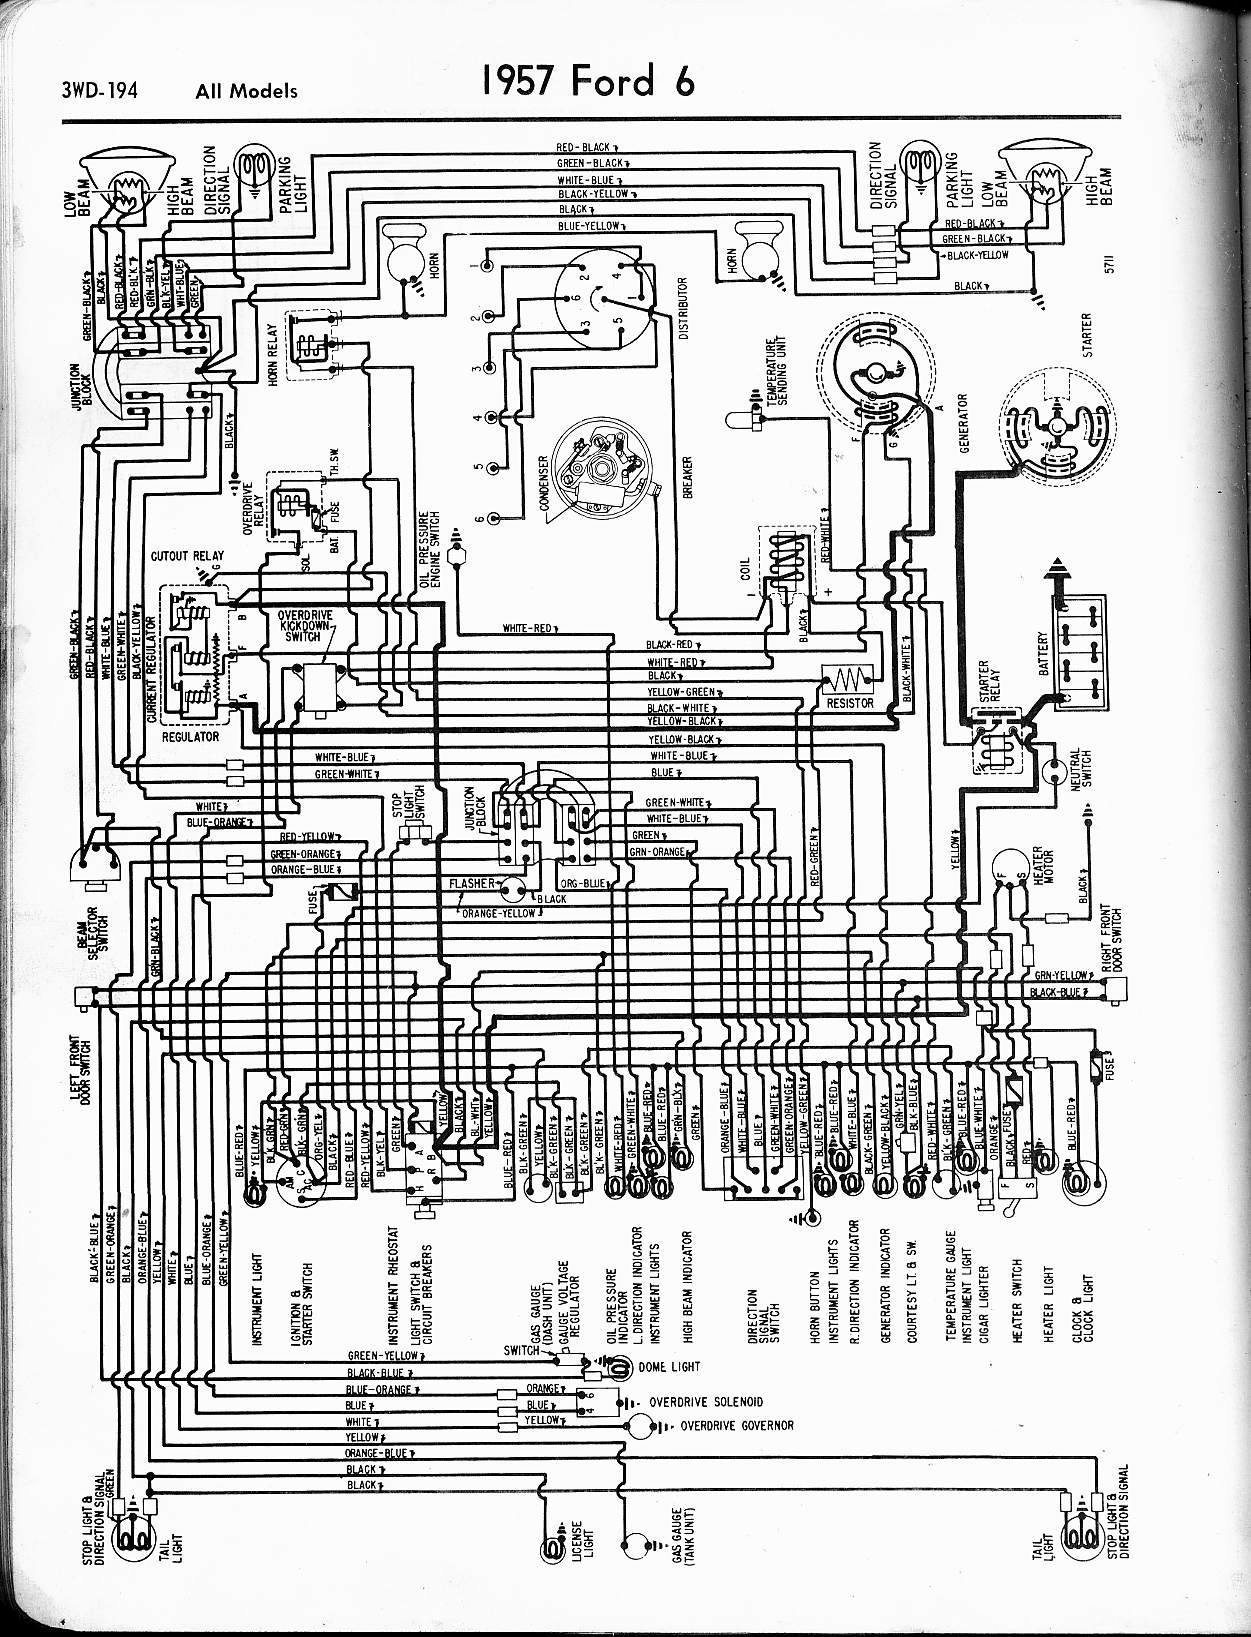 57_ford_wiring ford diagrams ford ltl 9000 wiring diagram at sewacar.co